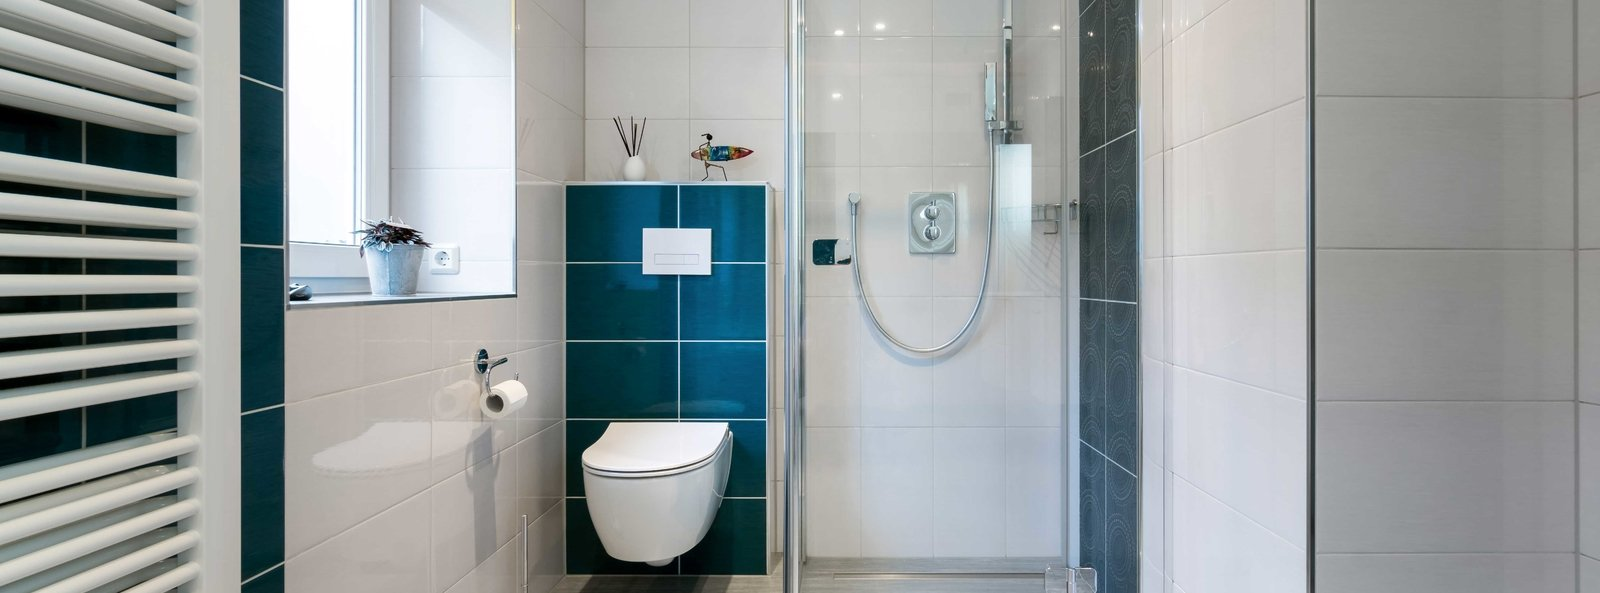 Could an updated bathroom add value to your home?